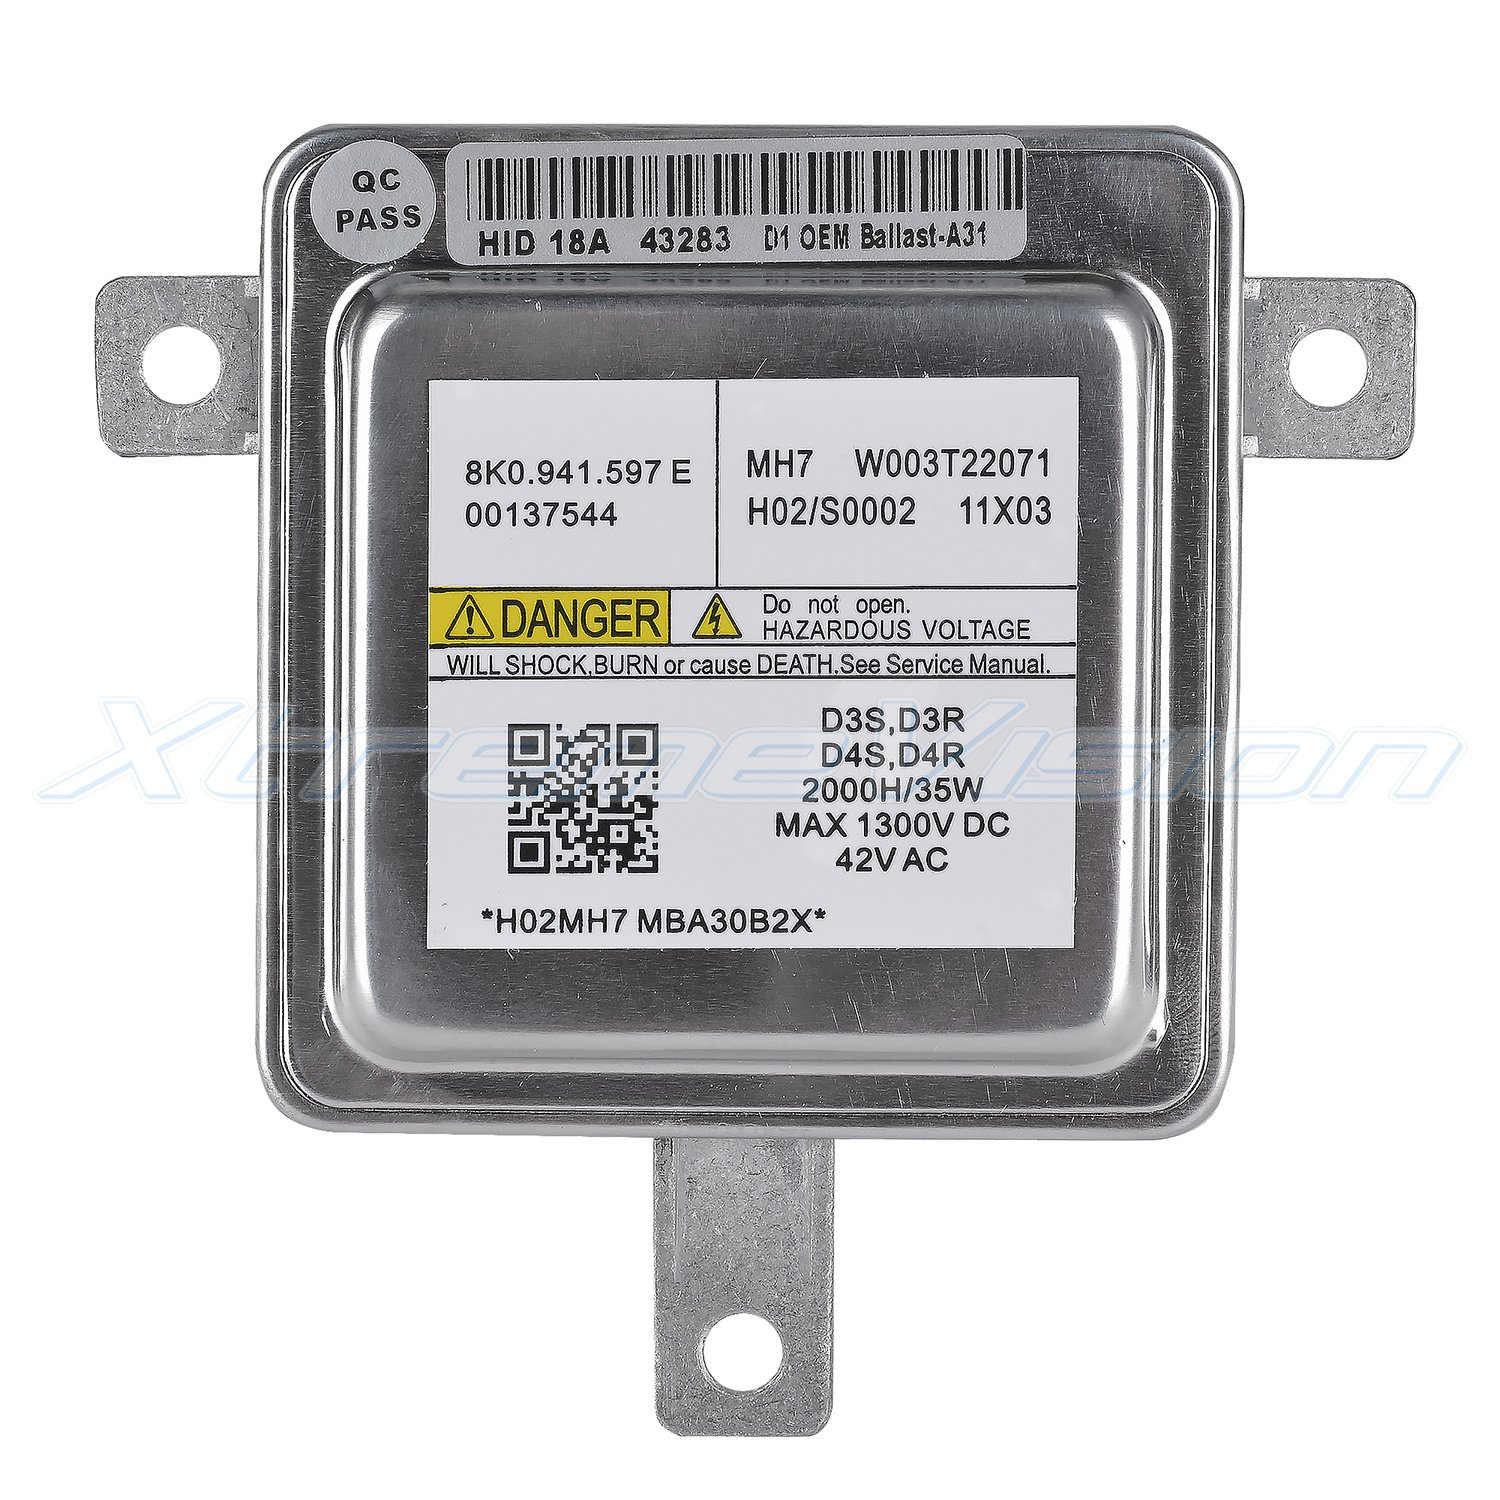 - 2 Year Warranty XtremeVision OEM Replacement Ballast Compatible with Mitsubishi W003T22071 Xenon HID Ballast D1S//D1R Single - 1 PCS